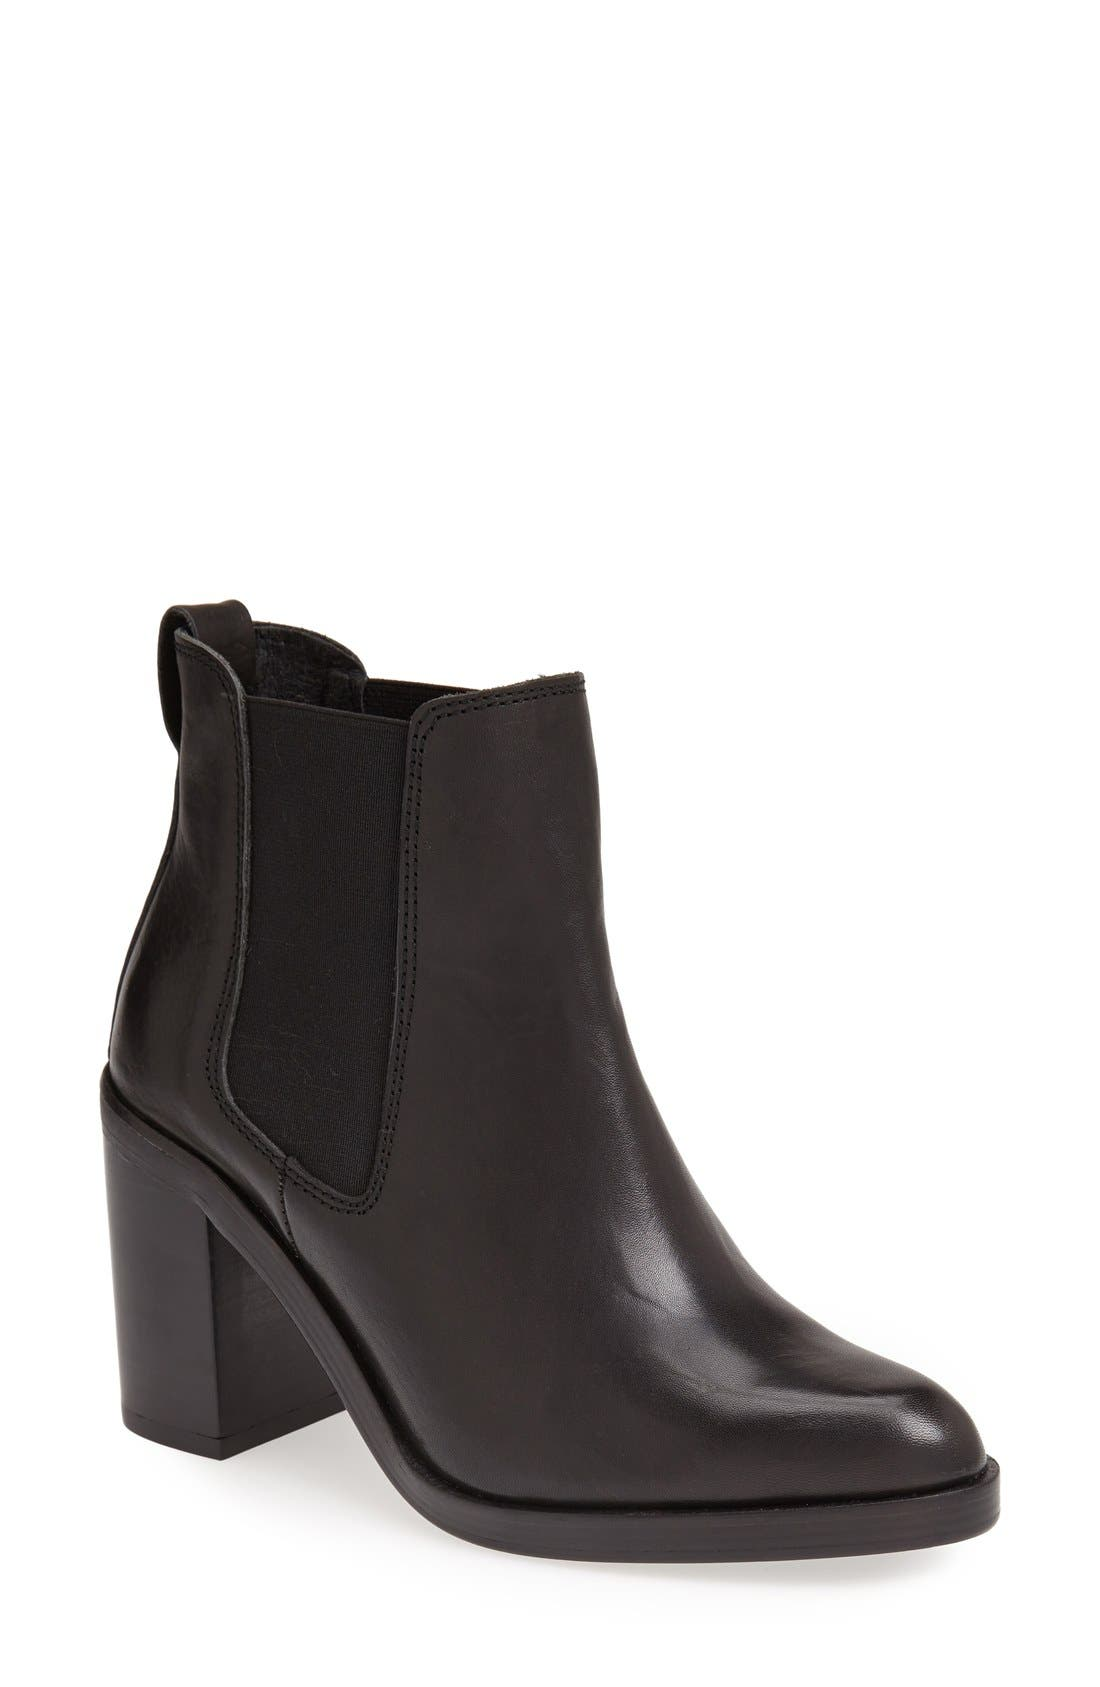 Main Image - Topshop 'Missile' Chelsea Boot (Women)